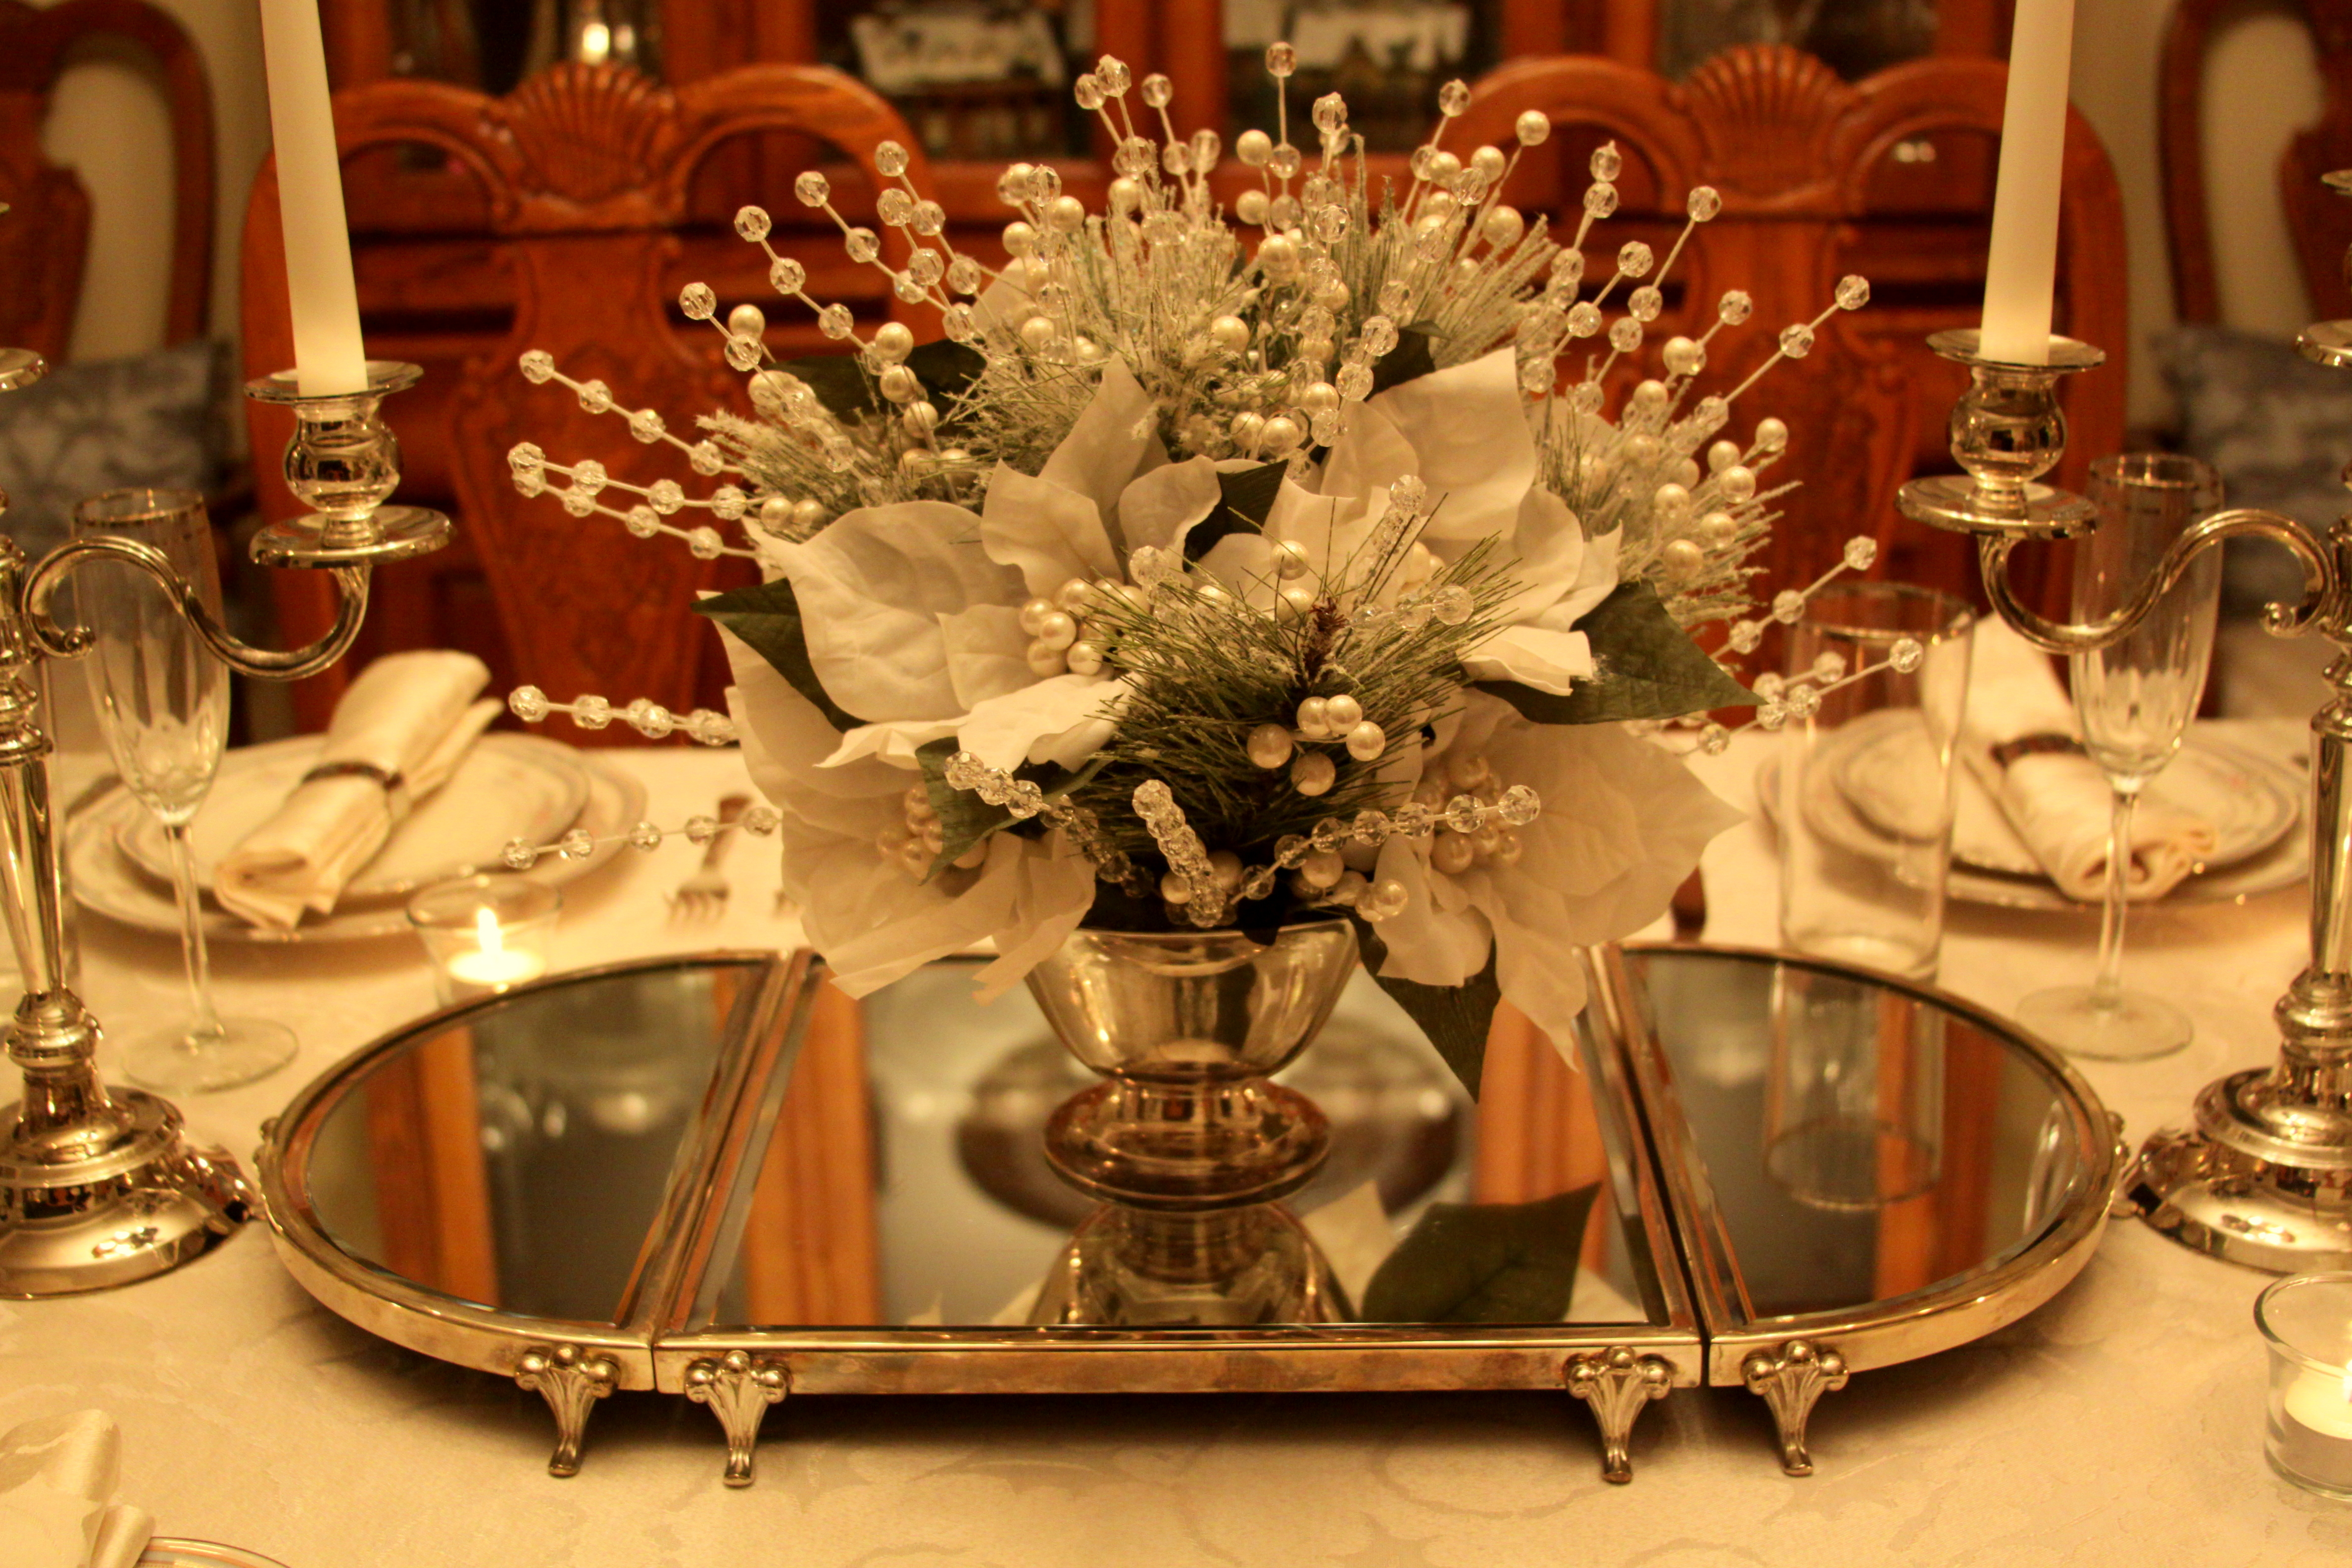 Decorating A China Cabinet For Spring The Enchanted Manor